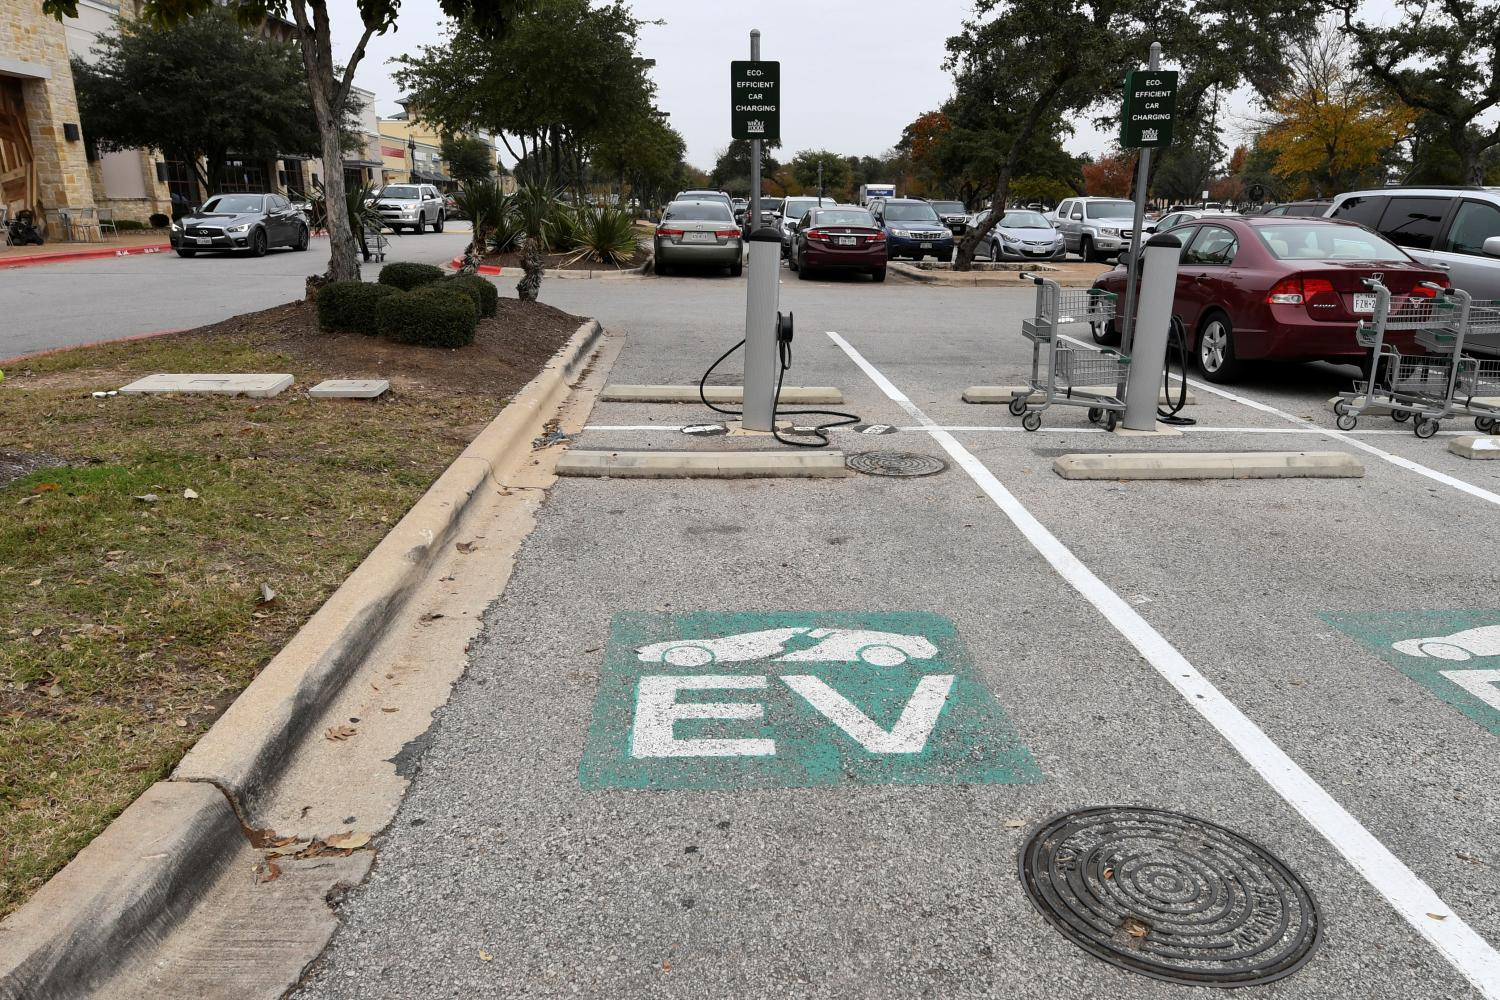 Drivers of electric vehicles who wish to take them on road trips need to plan ahead carefully. Here, a fast charging station in the parking lot of a Whole Foods Market in Austin, Texas.REUTERS